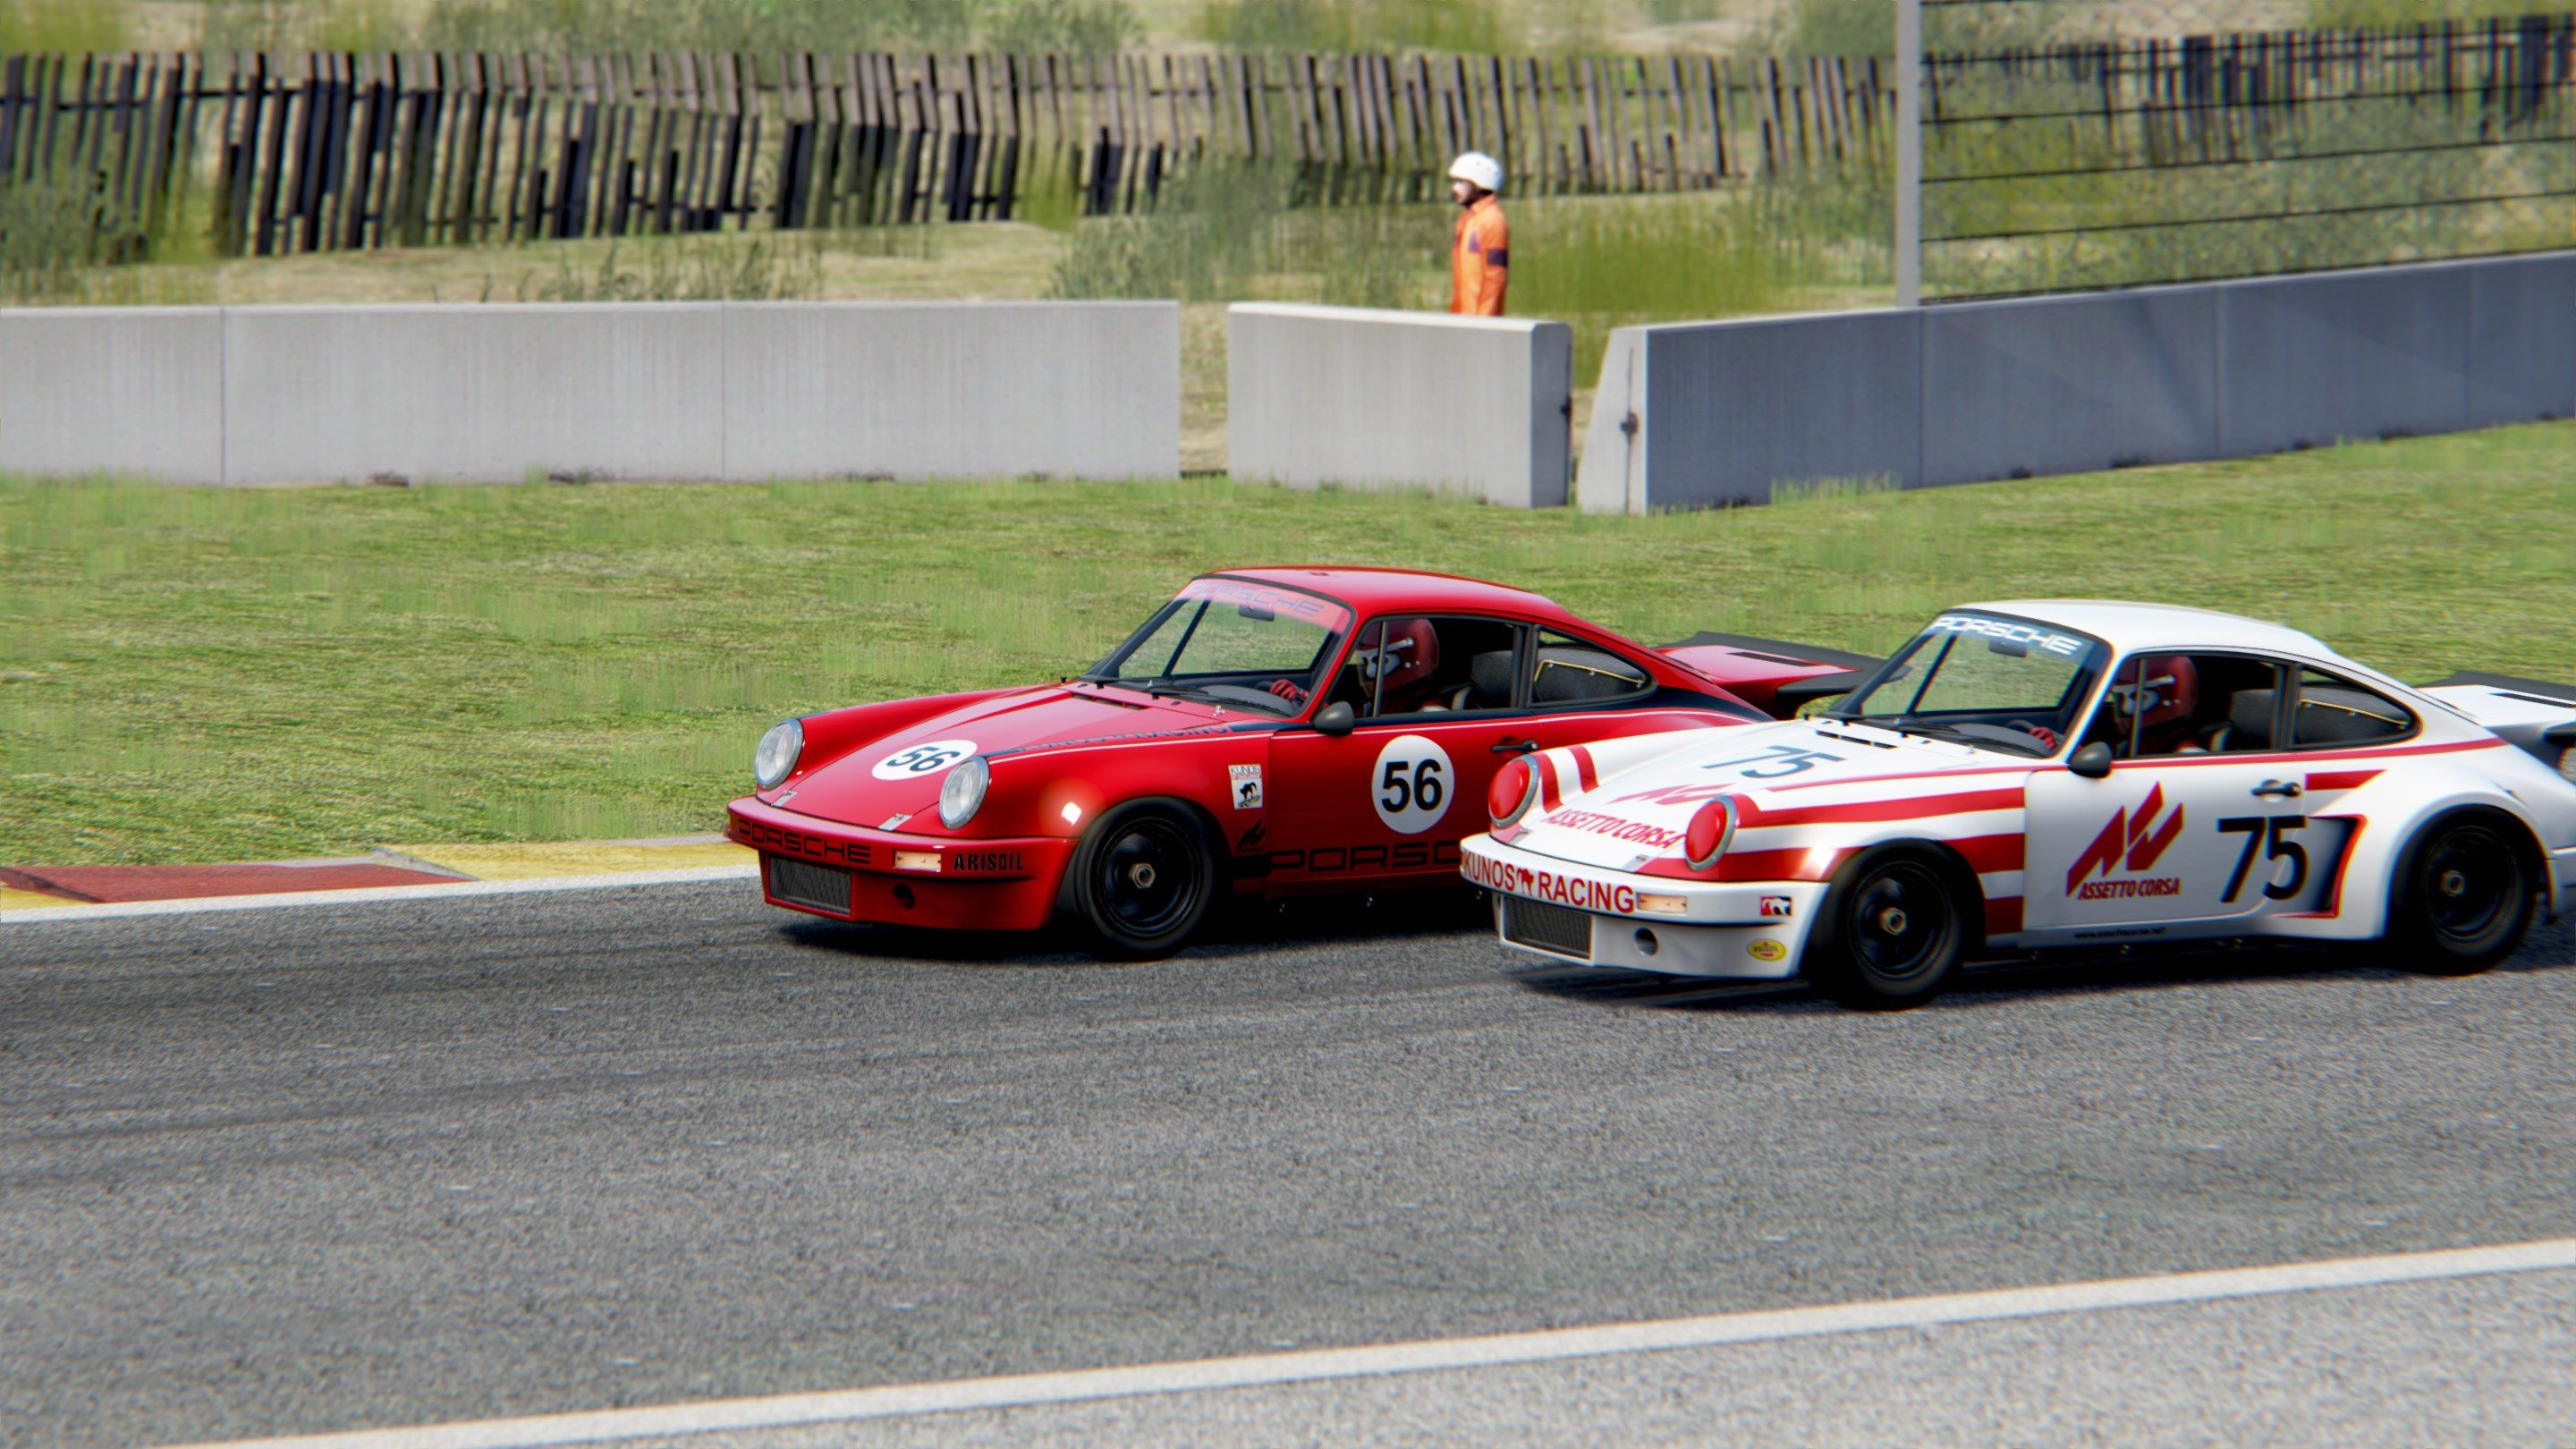 Torneo Legend - Porsche 911 Carrera RSR Screenshot_ks_porsche_911_carrera_rsr_road_america_8_9_117_1_22_32